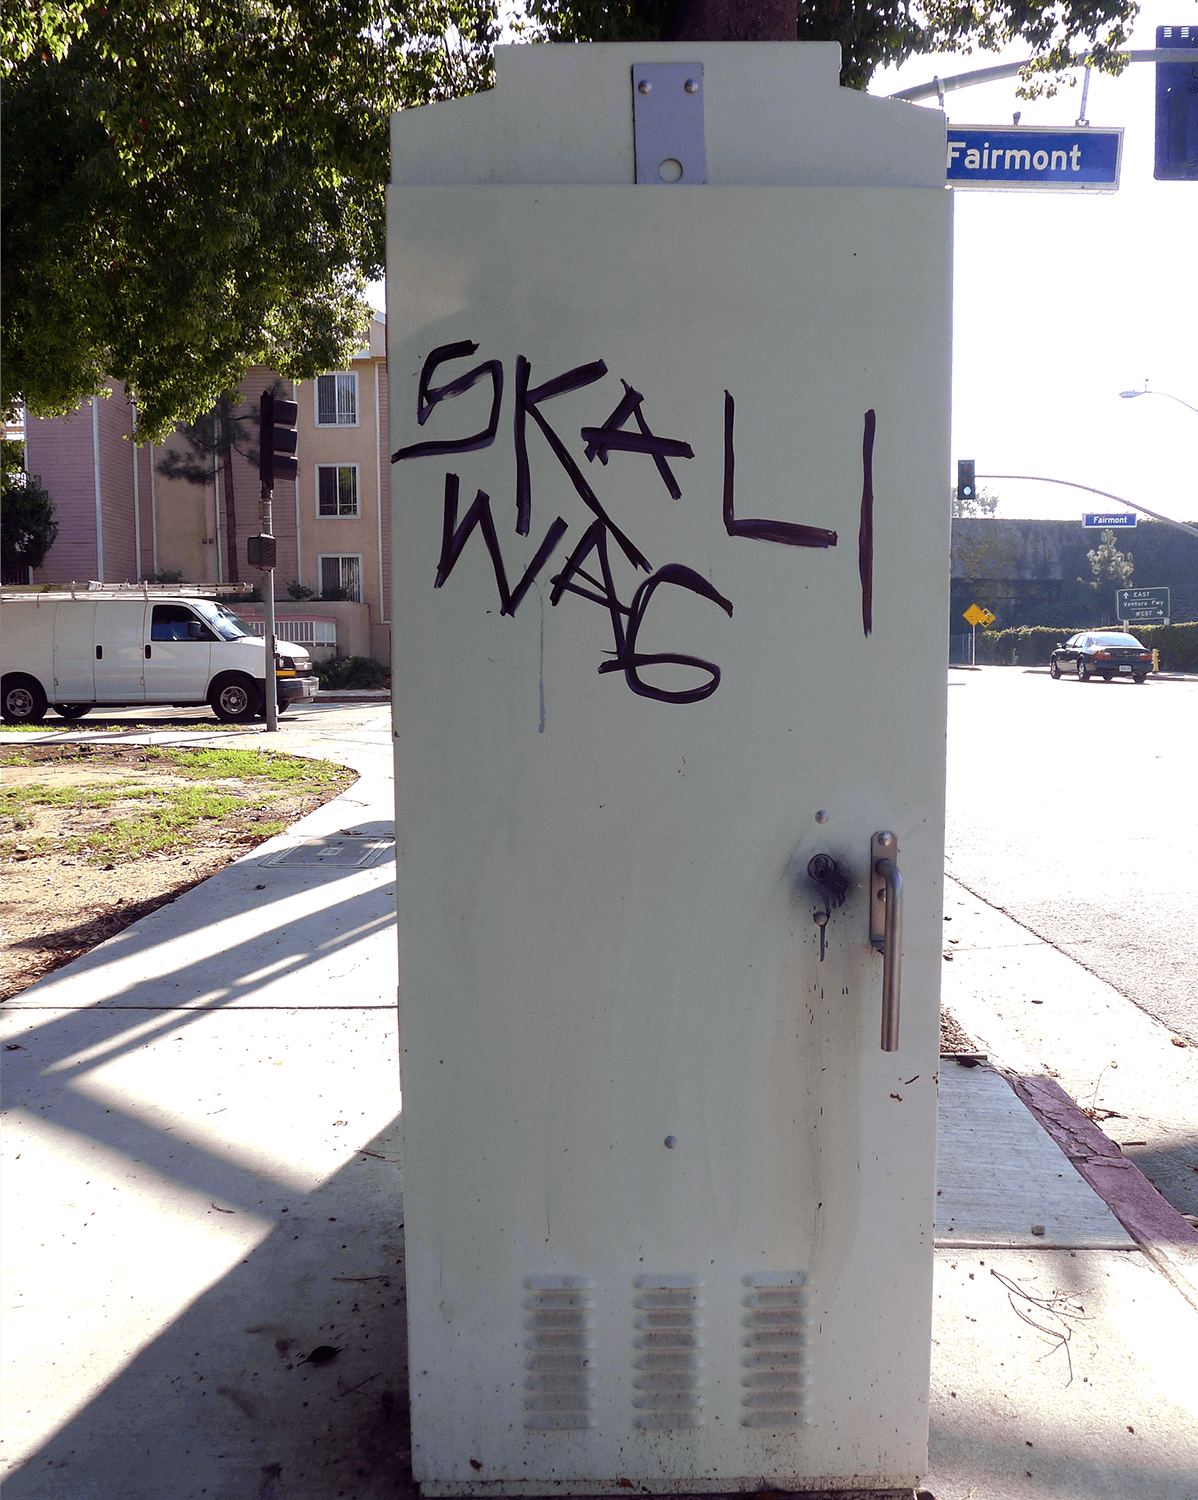 removing graffiti from electrical box